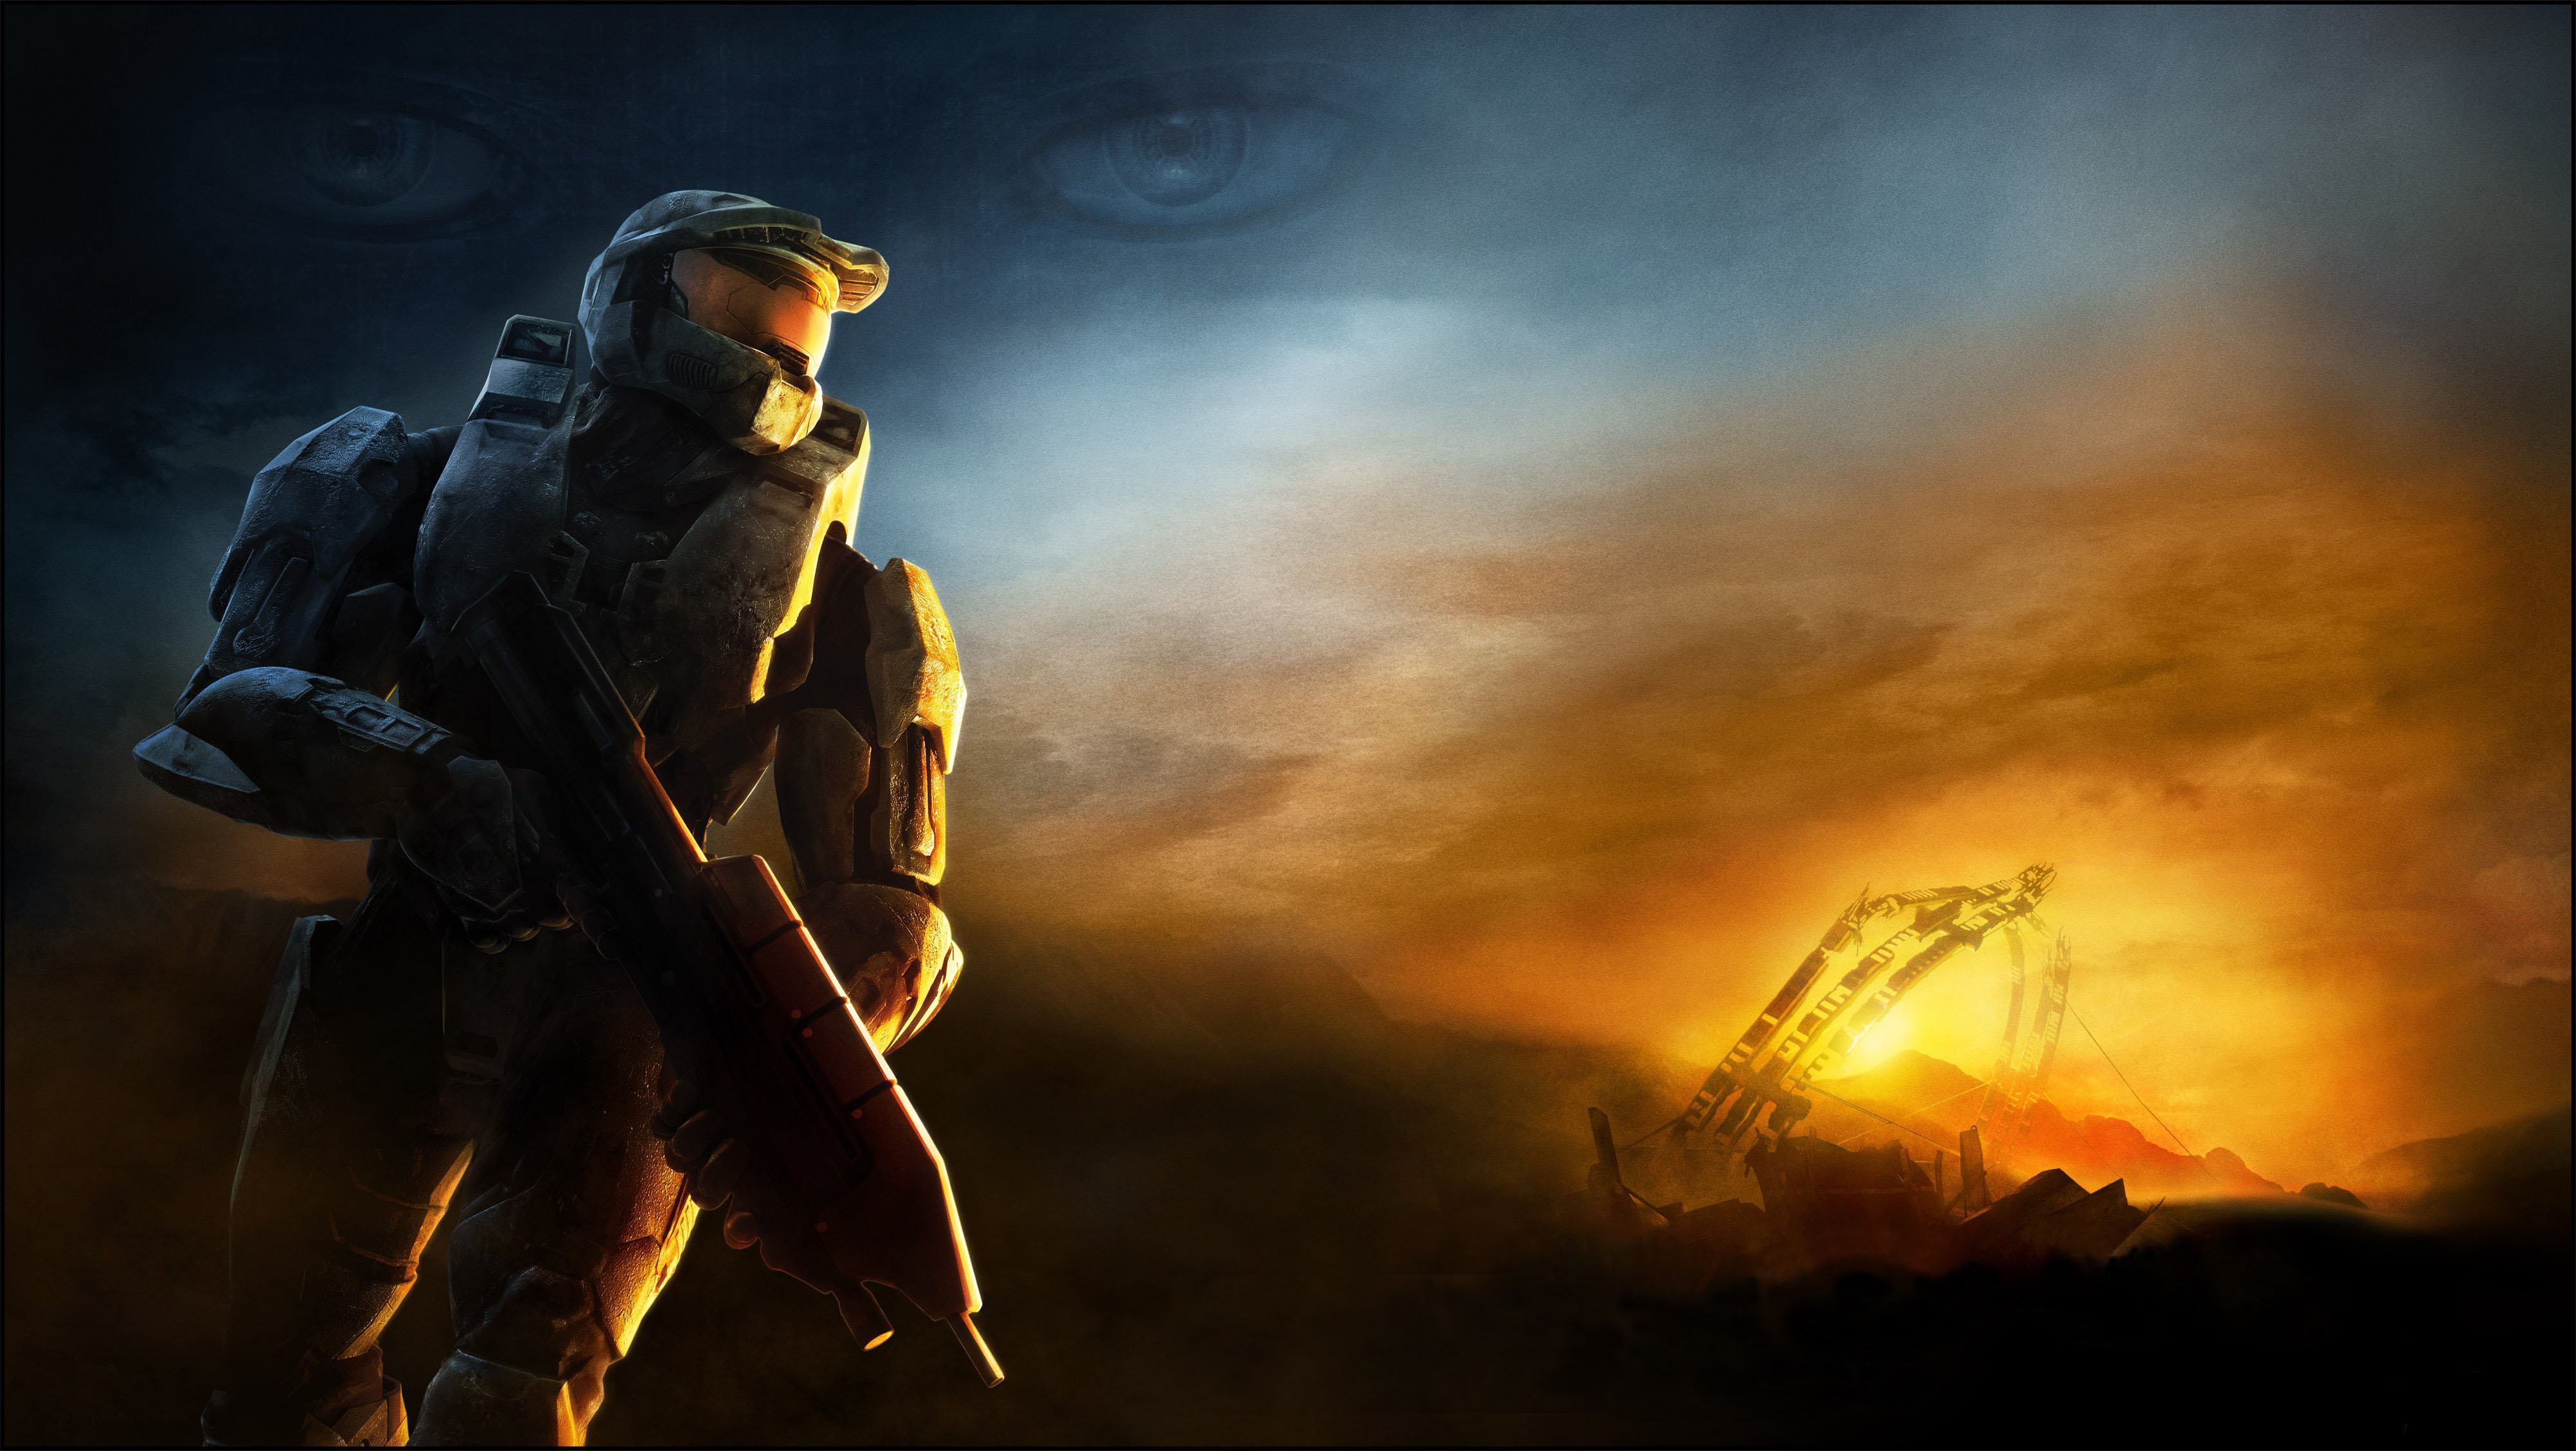 halo 3 desktop clipart 20 free Cliparts | Download images on